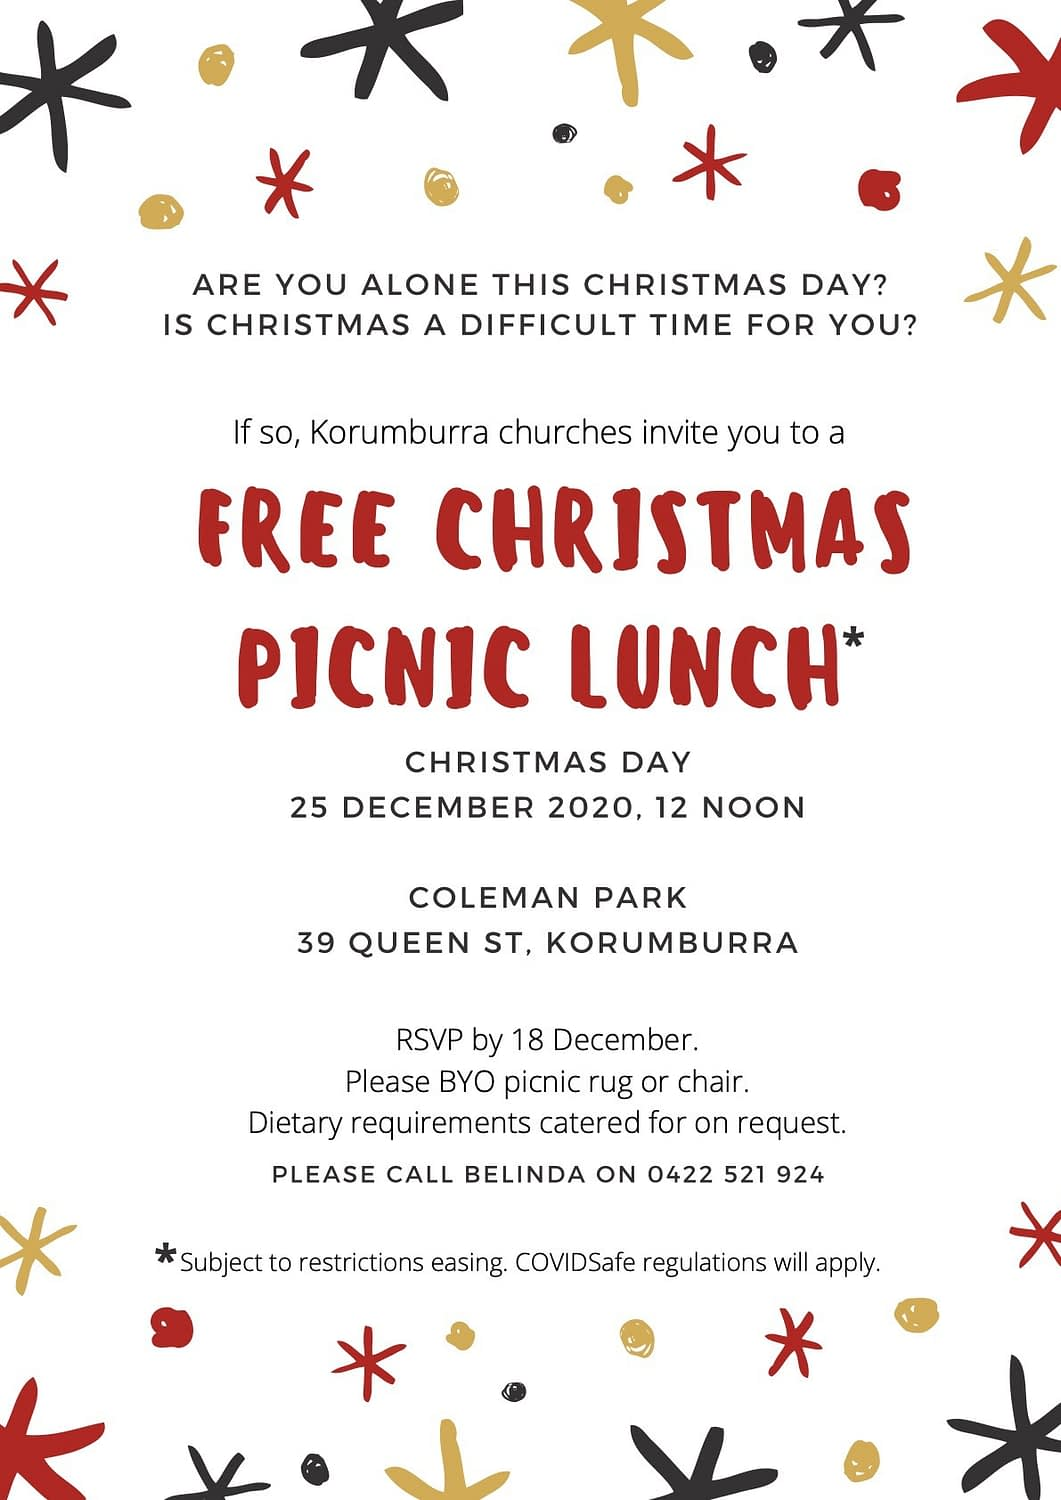 Korumburra Christmas Lunch Picnic flyer